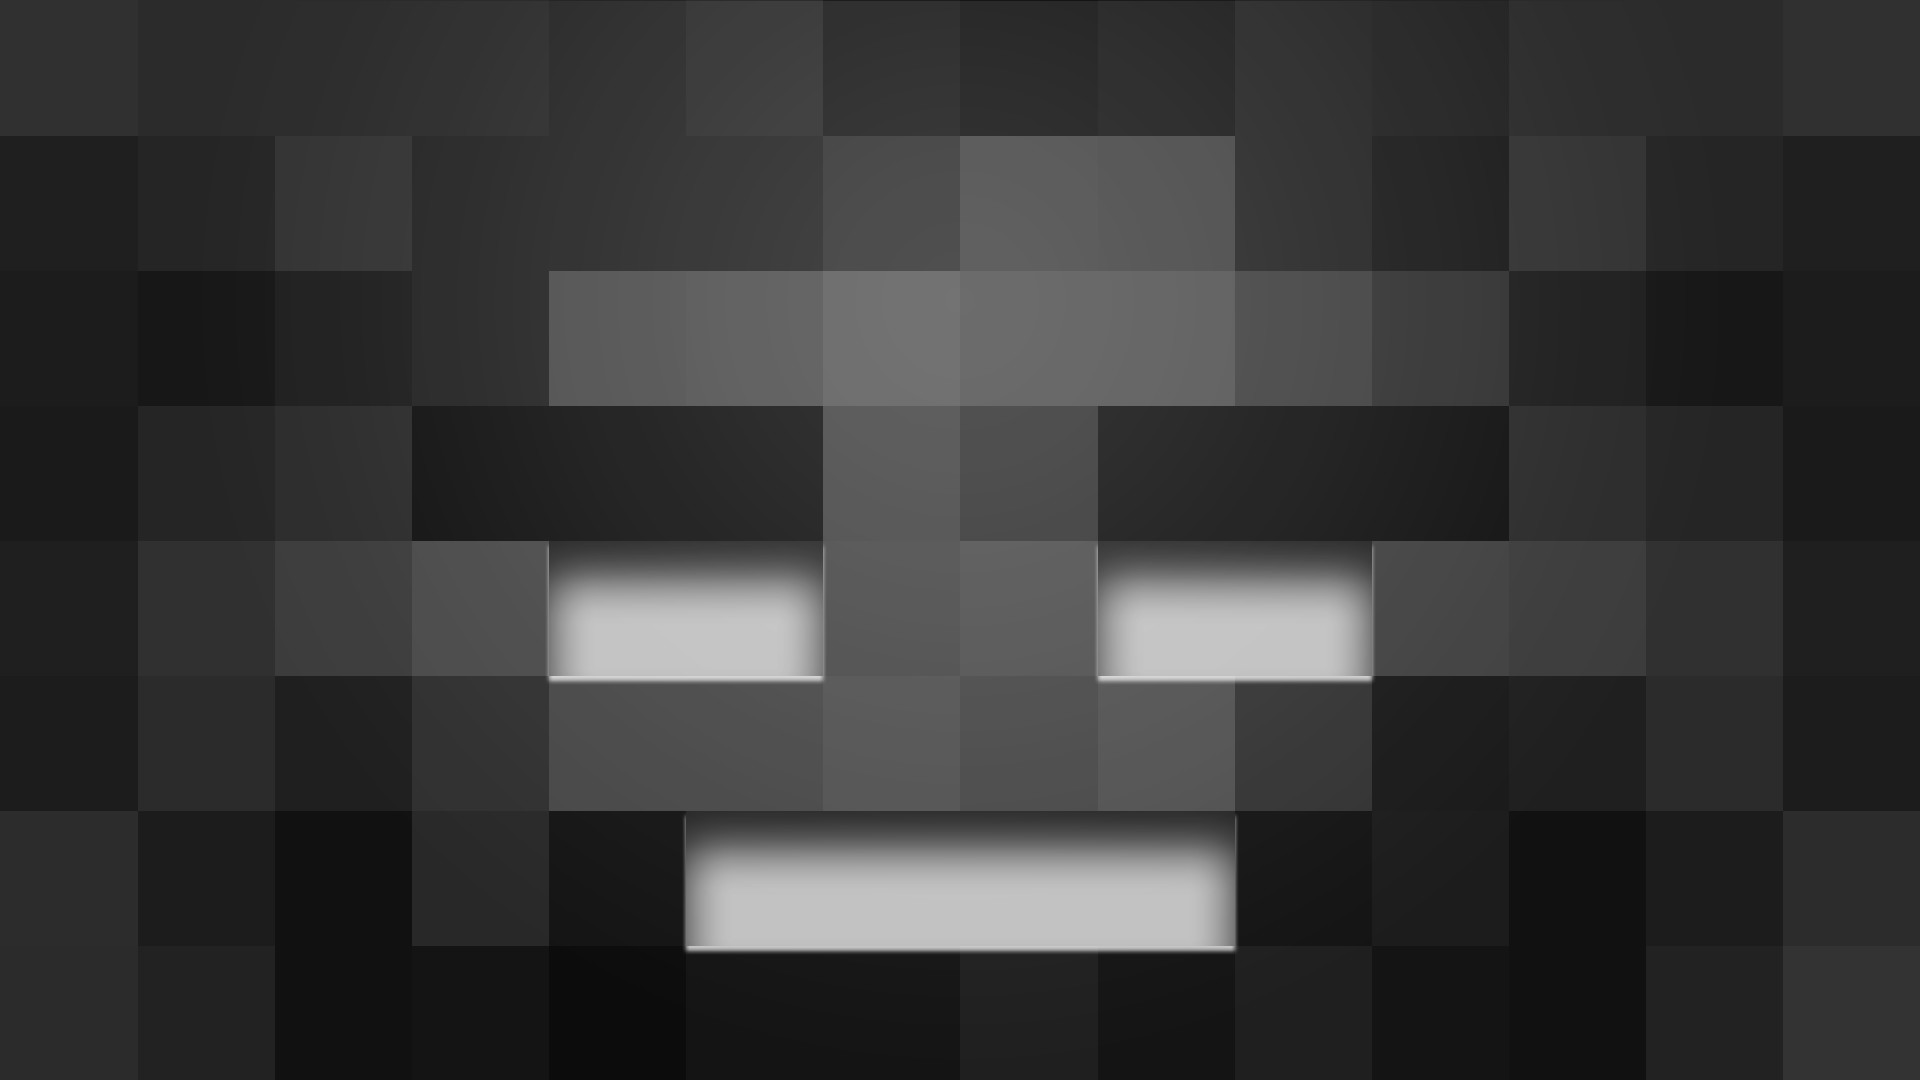 Res: 1920x1080, Minecraft Wither Secondary Head Wallpaper by averagejoeftw Minecraft Wither  Secondary Head Wallpaper by averagejoeftw